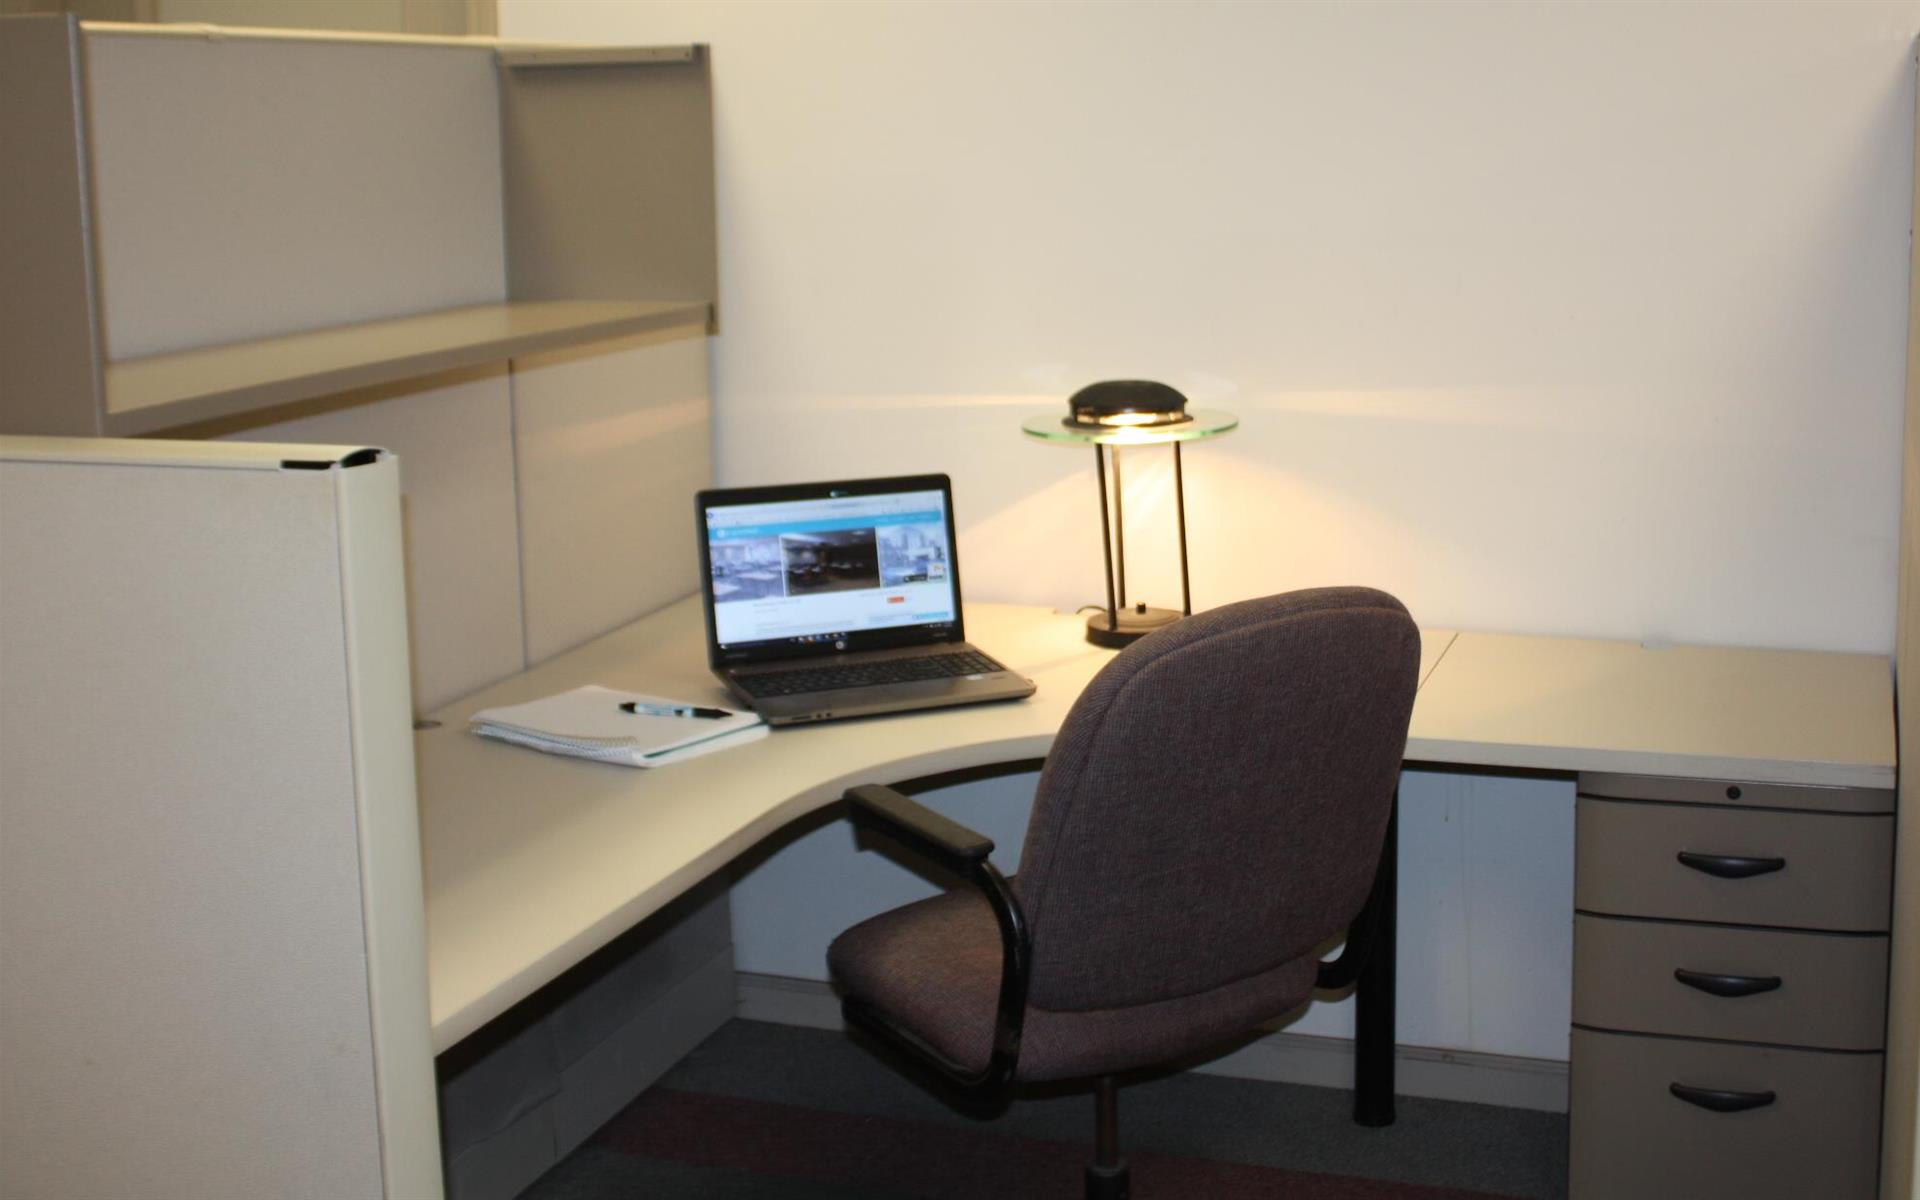 Offices and Coworking in Central NJ - Metuchen, NJ - Coworking Space in Suite 111